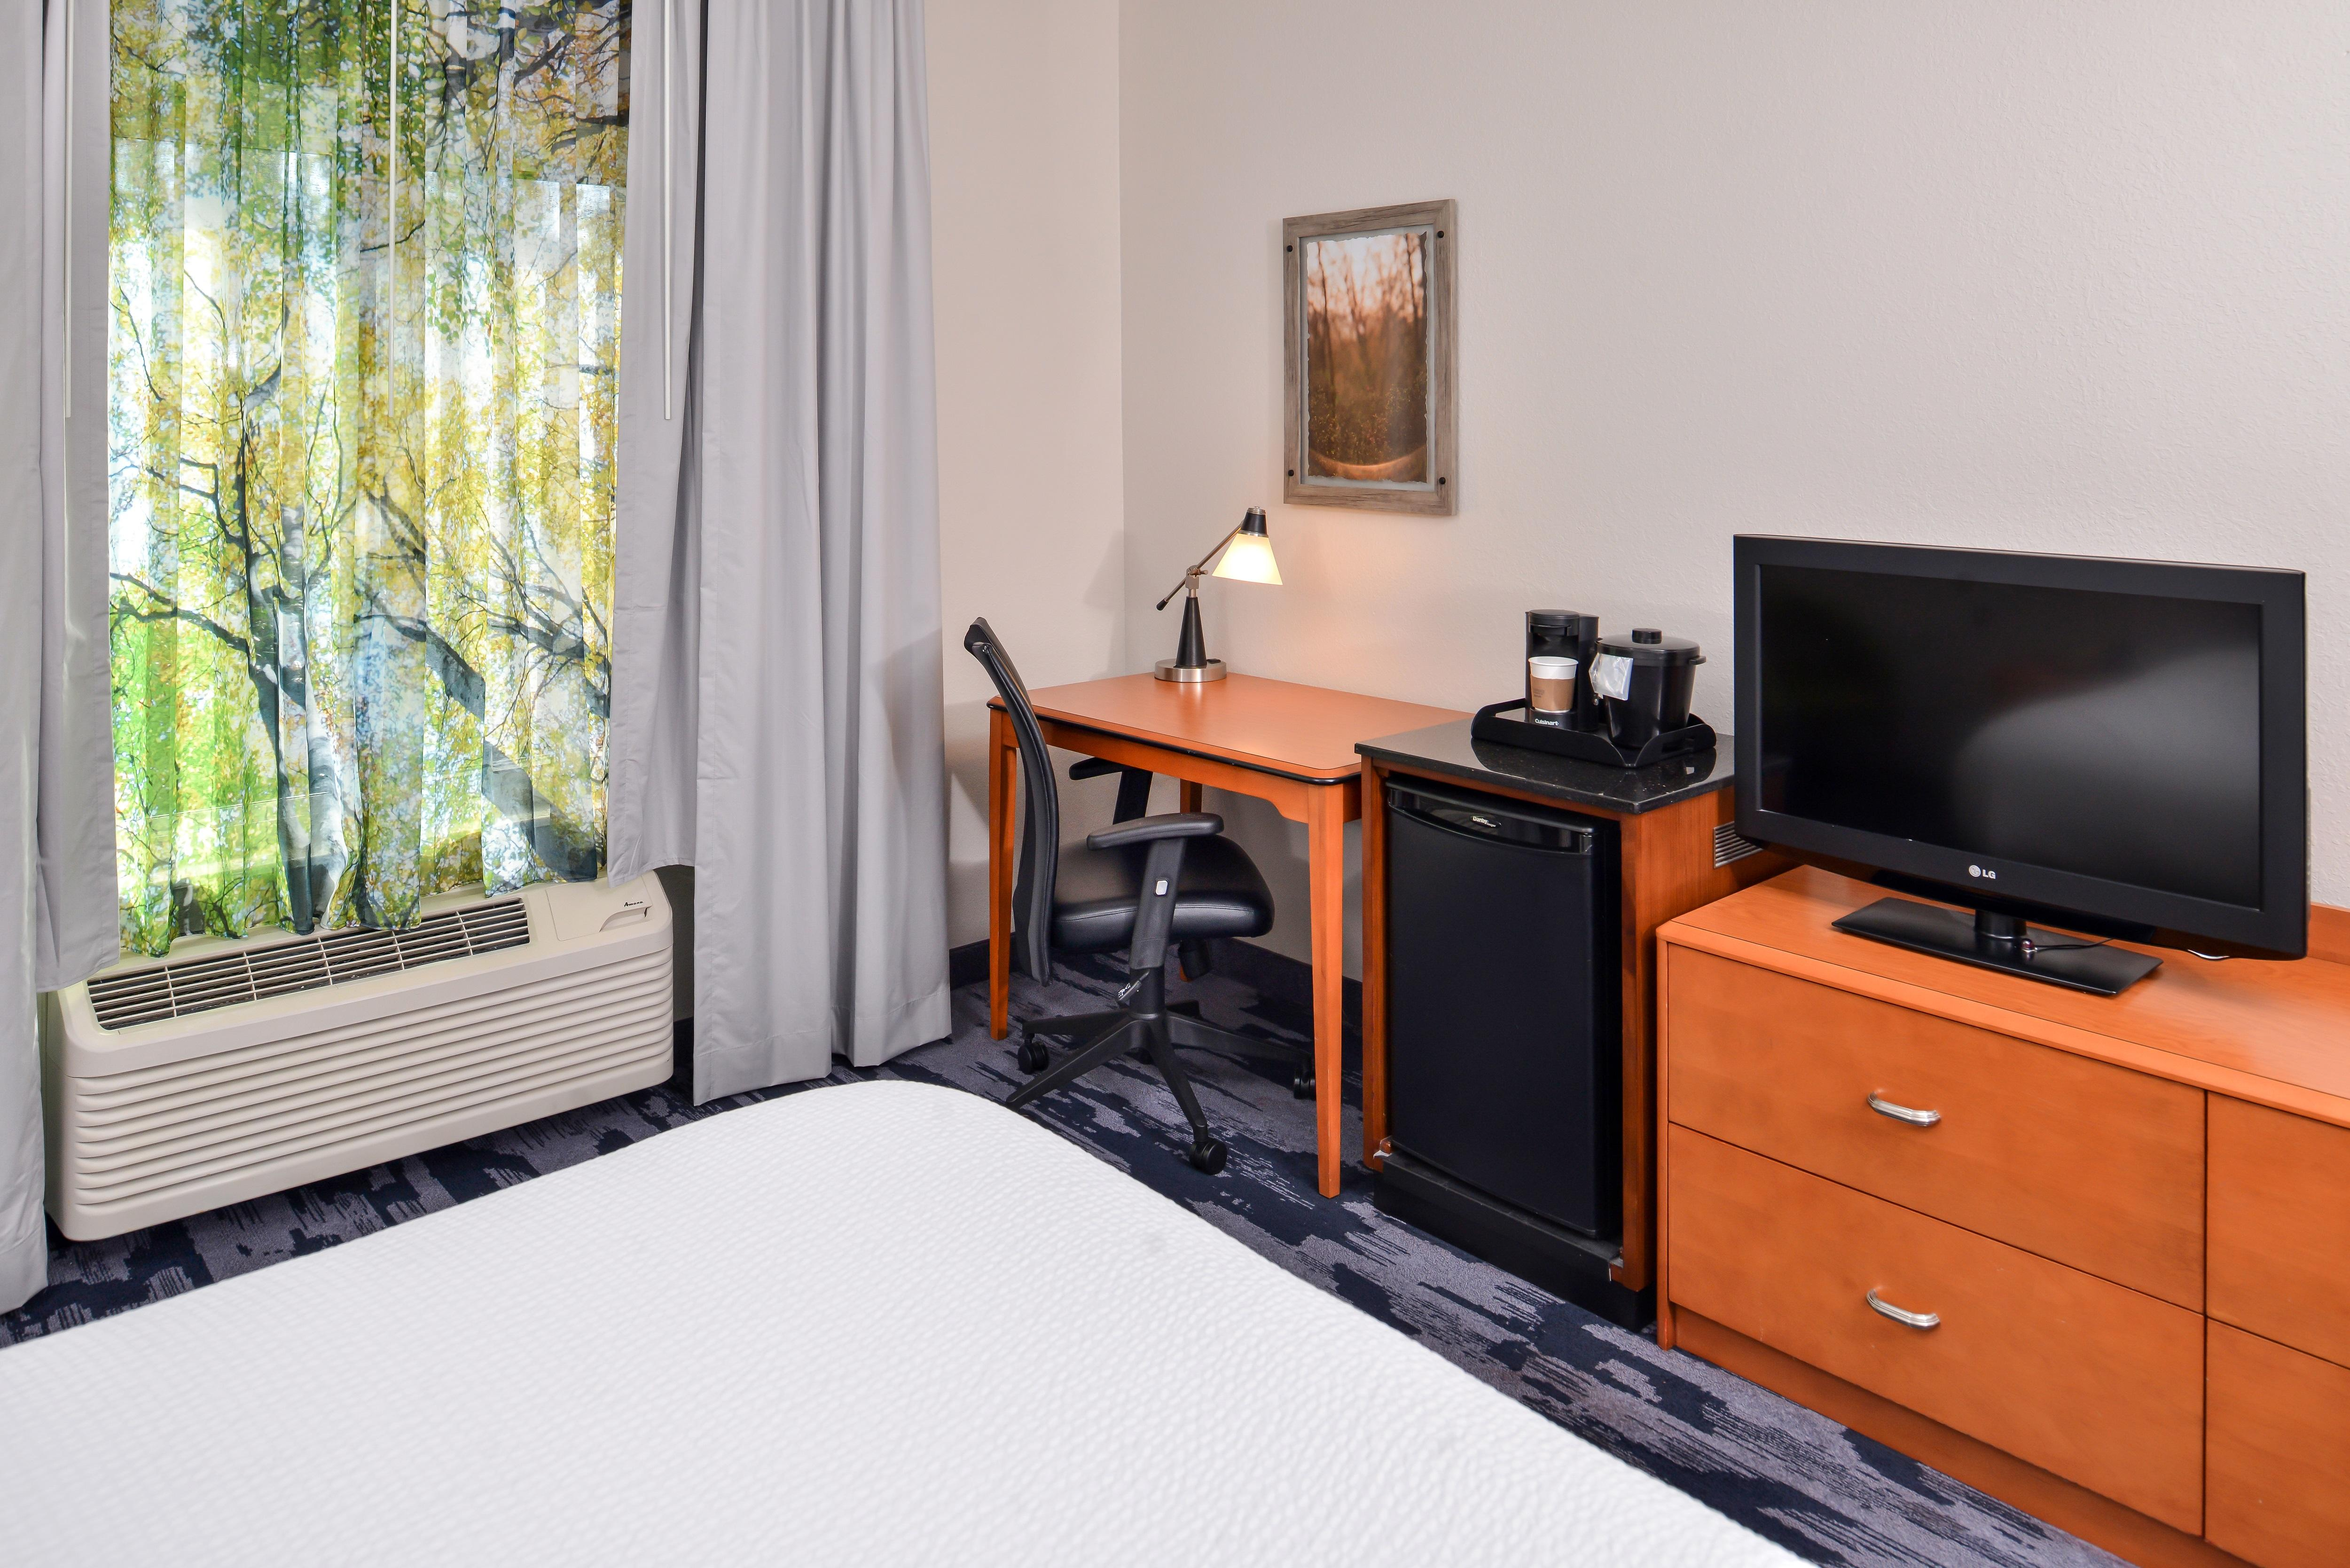 Fairfield Inn & Suites by Marriott Ocala image 8